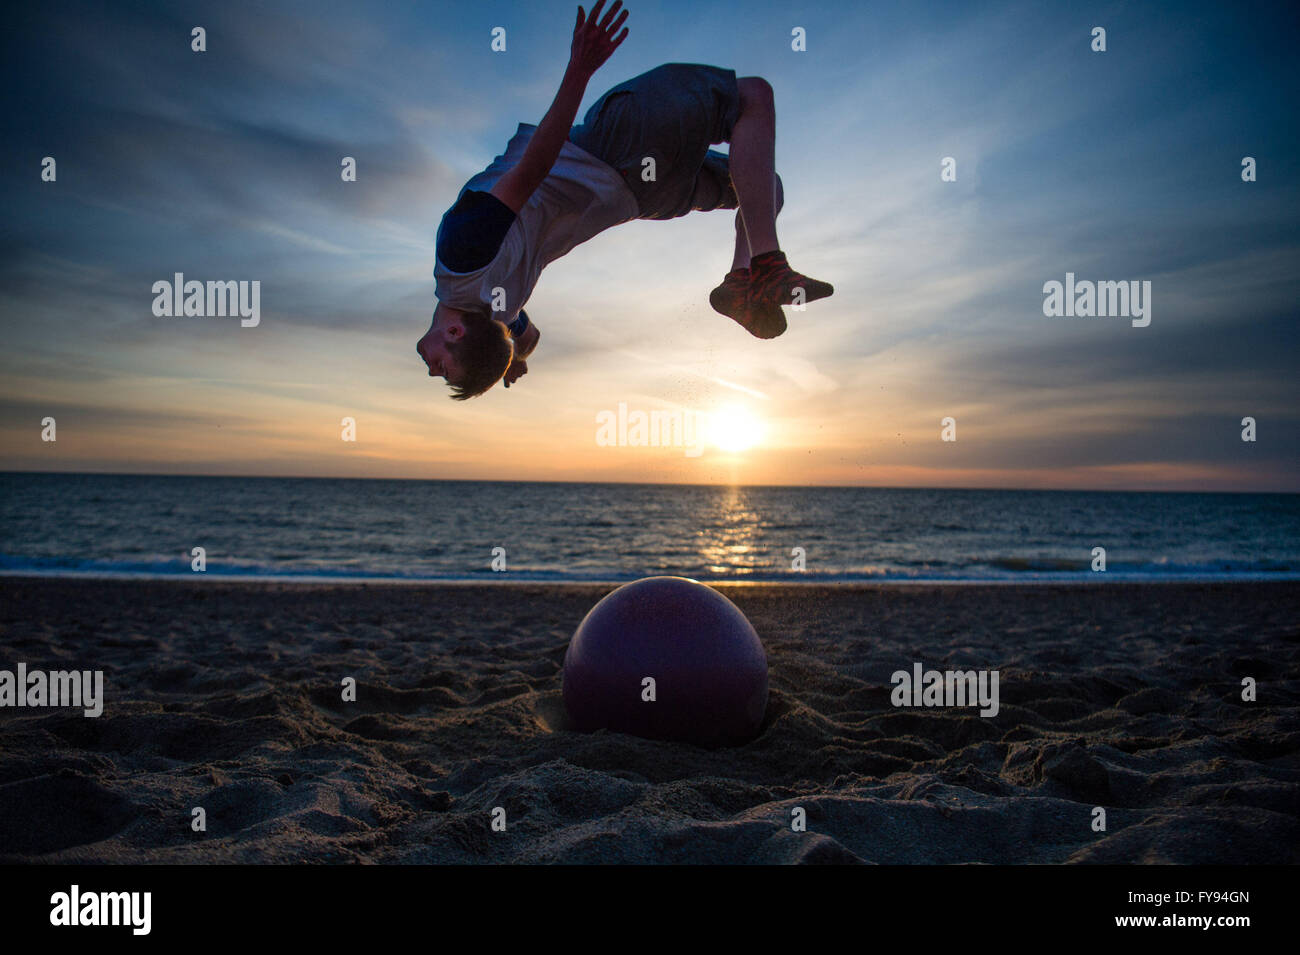 Aberystwyth Wales UK, Saturday 23 April 2016 UK weather: As the sun sets over Cardigan Bay in Aberystwyth at the - Stock Image